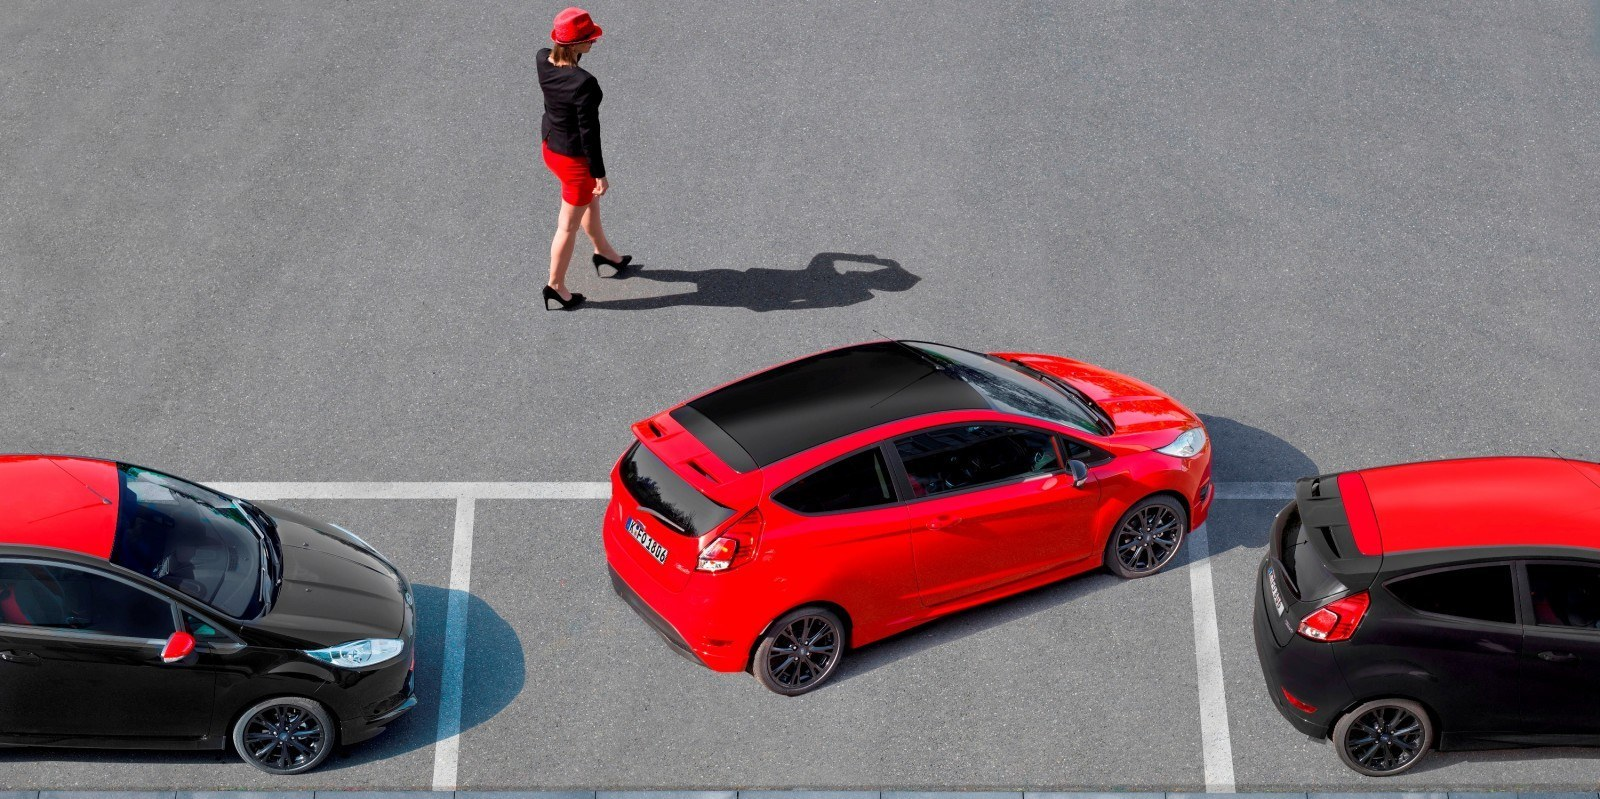 2014 Ford Fiesta Red Edition and Fiesta Black Edition Announced for UK 8